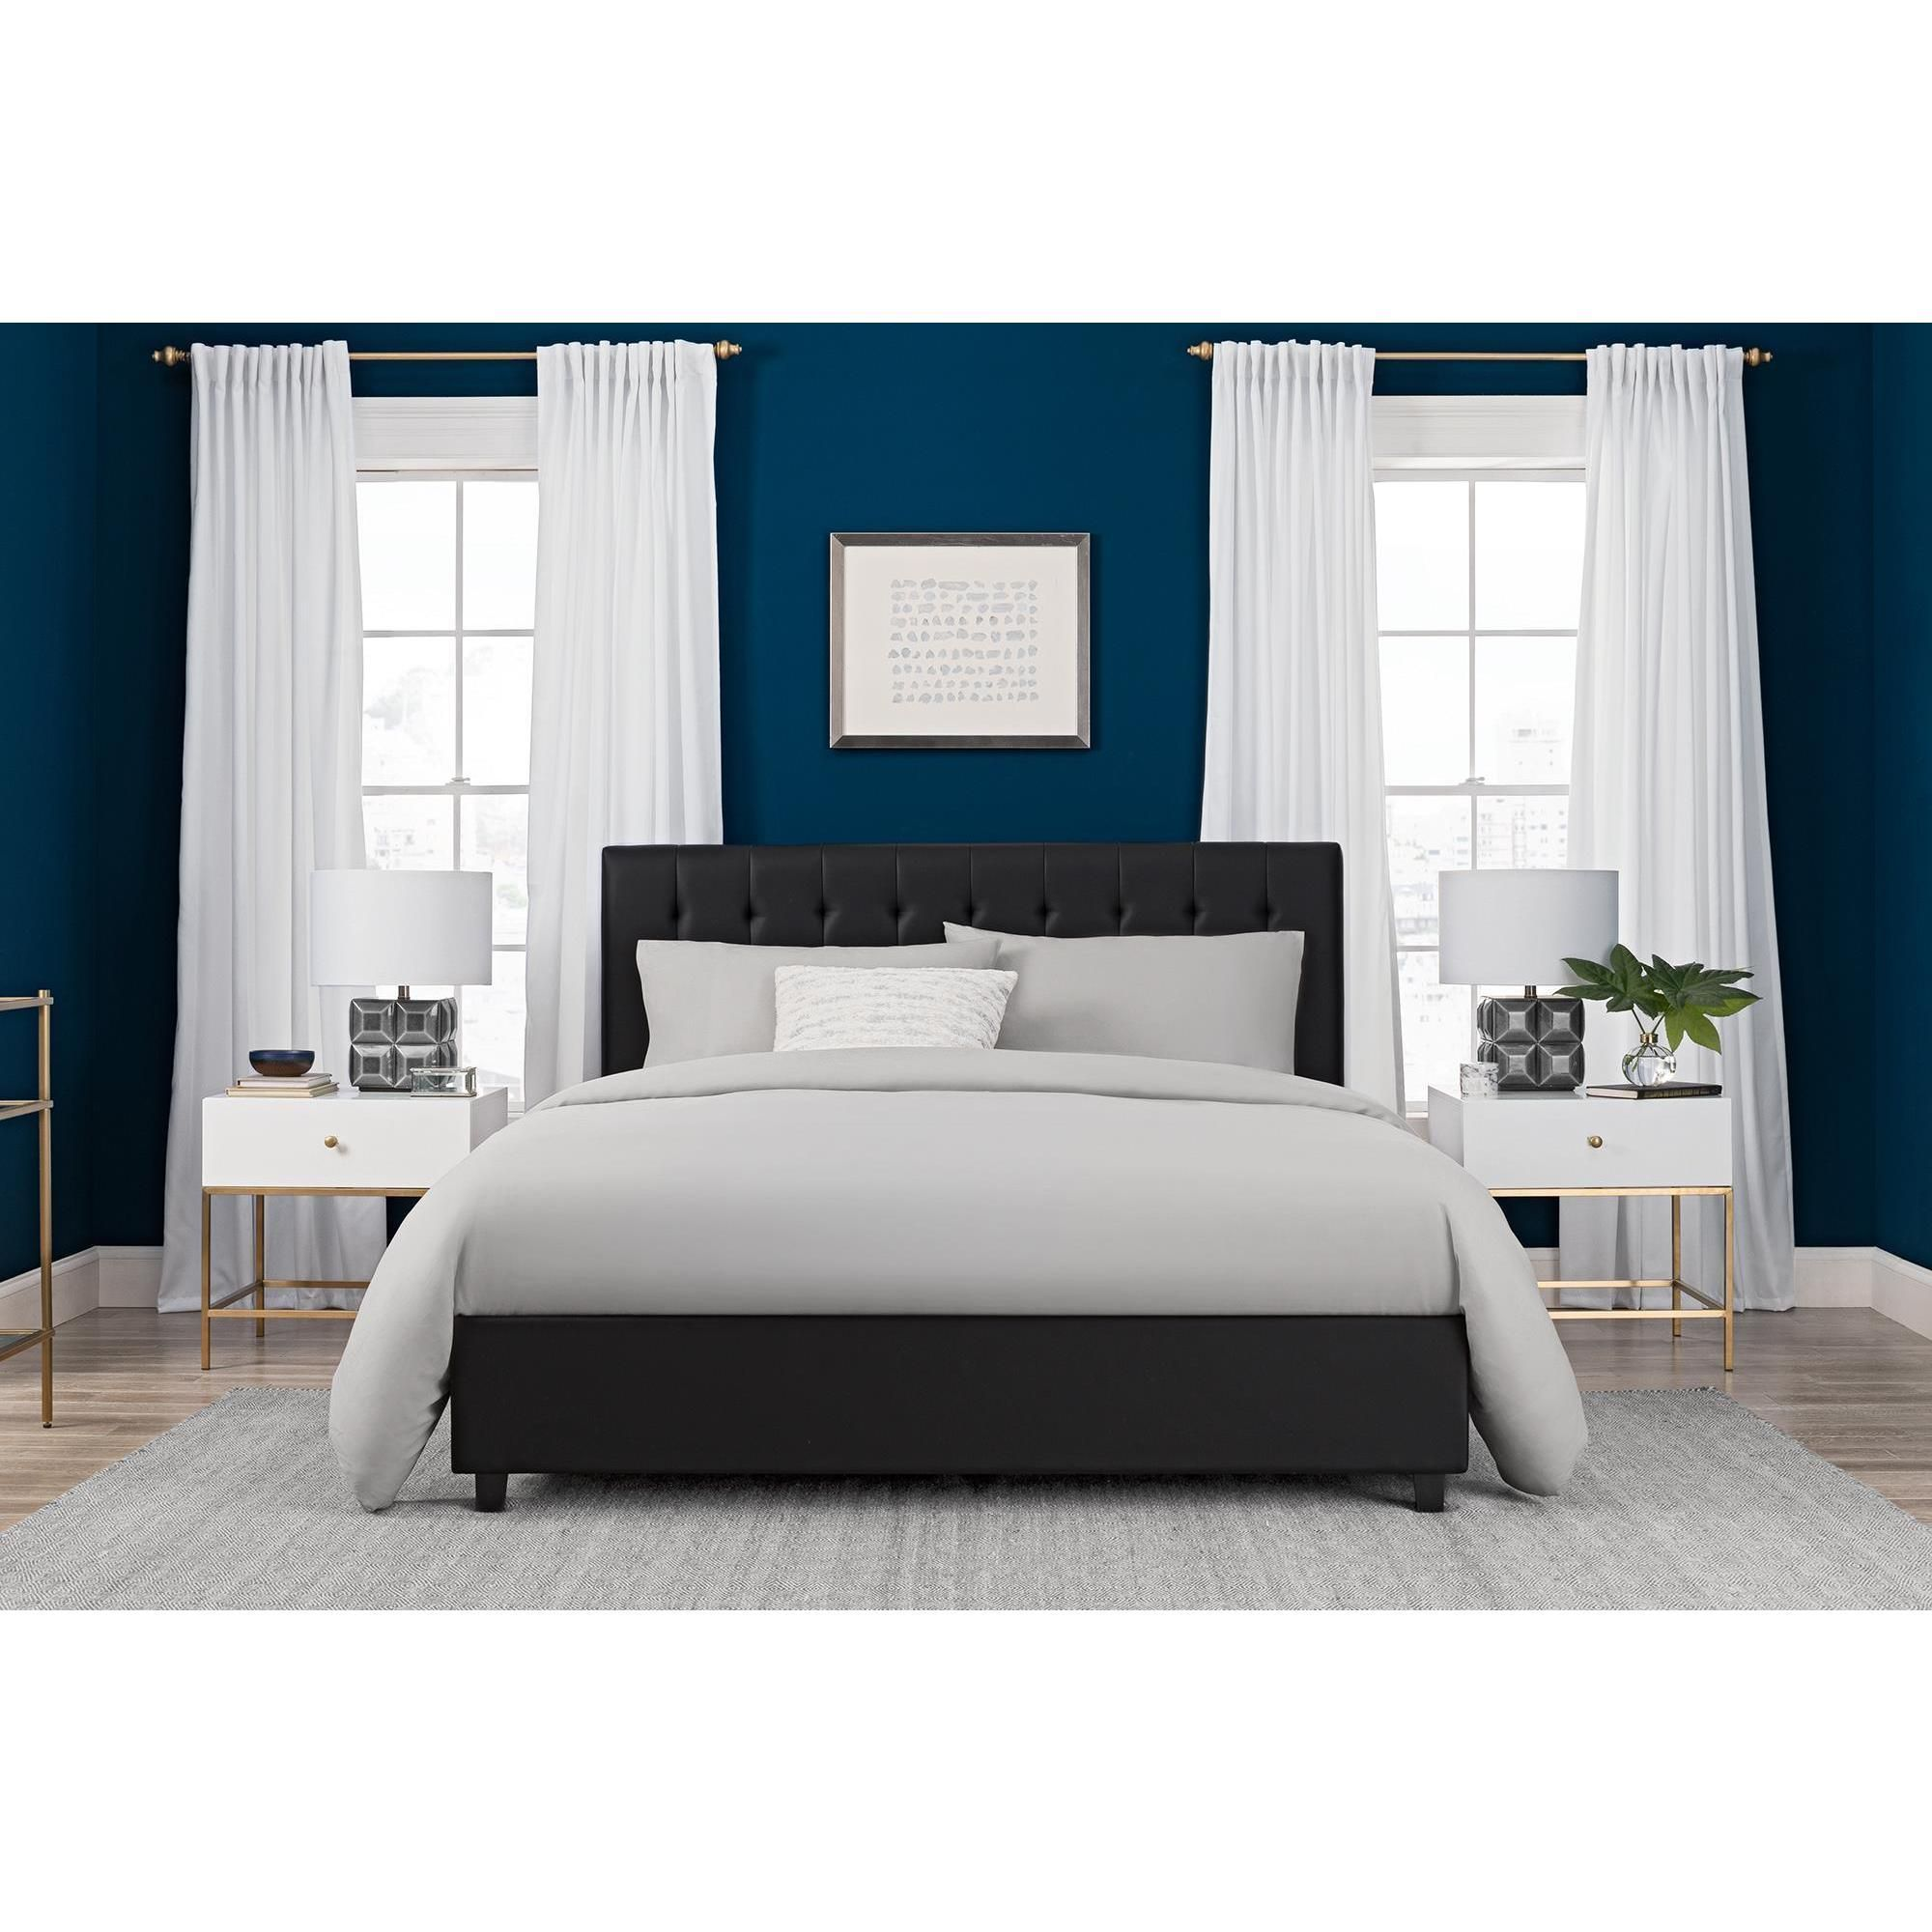 DHP Emily Faux Leather Upholstered Bed